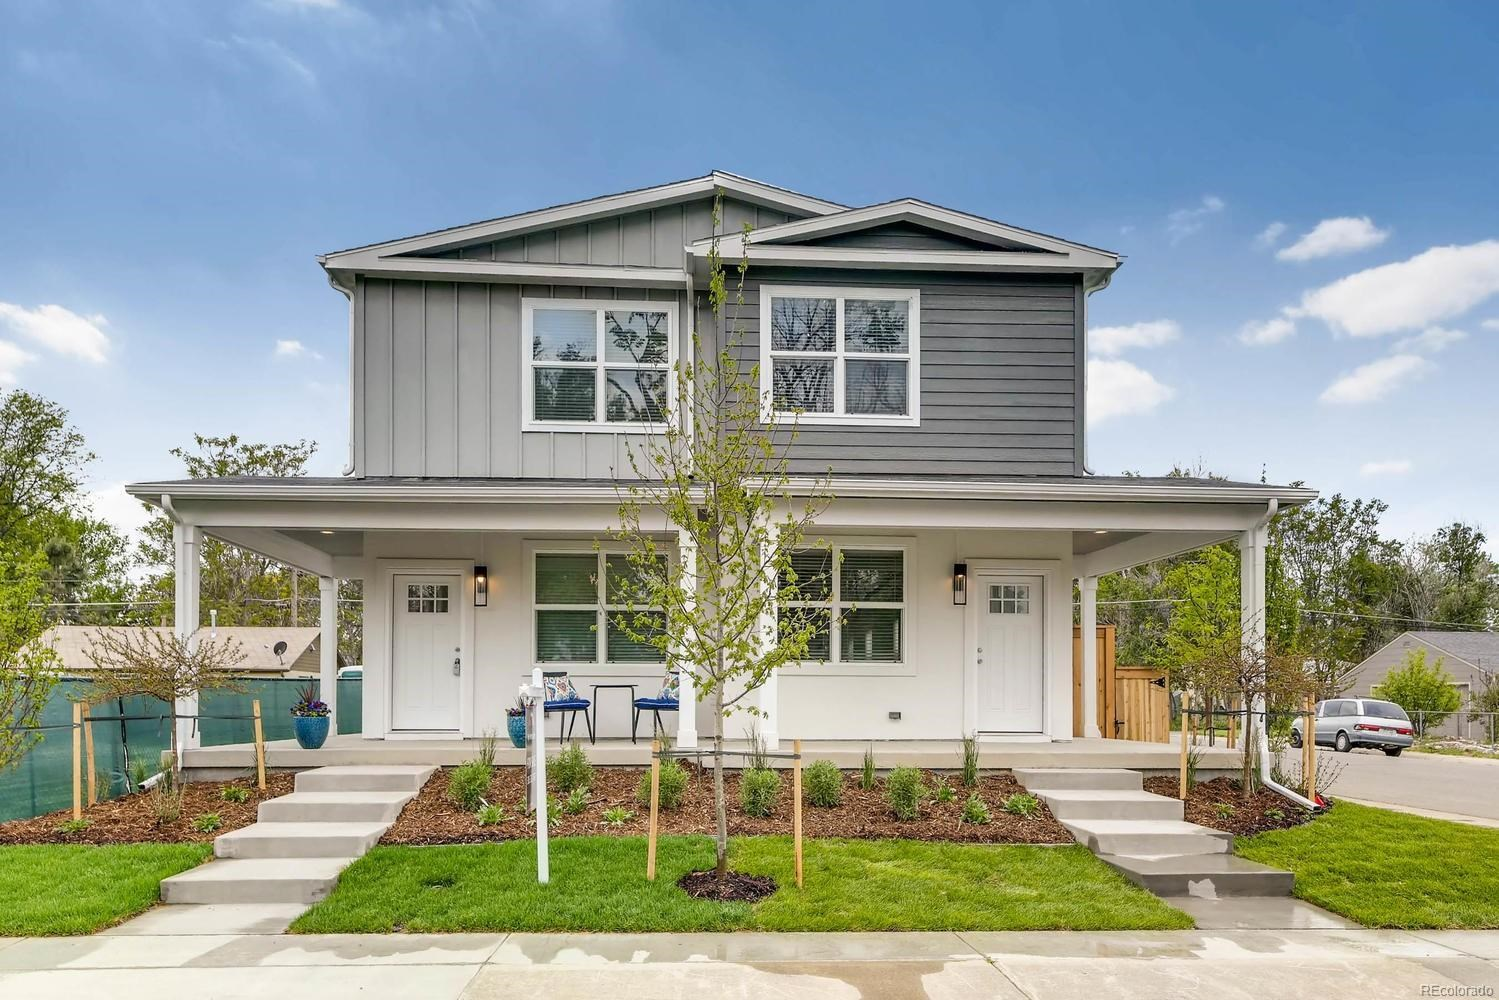 Modular Home Builders Association Home of the Month